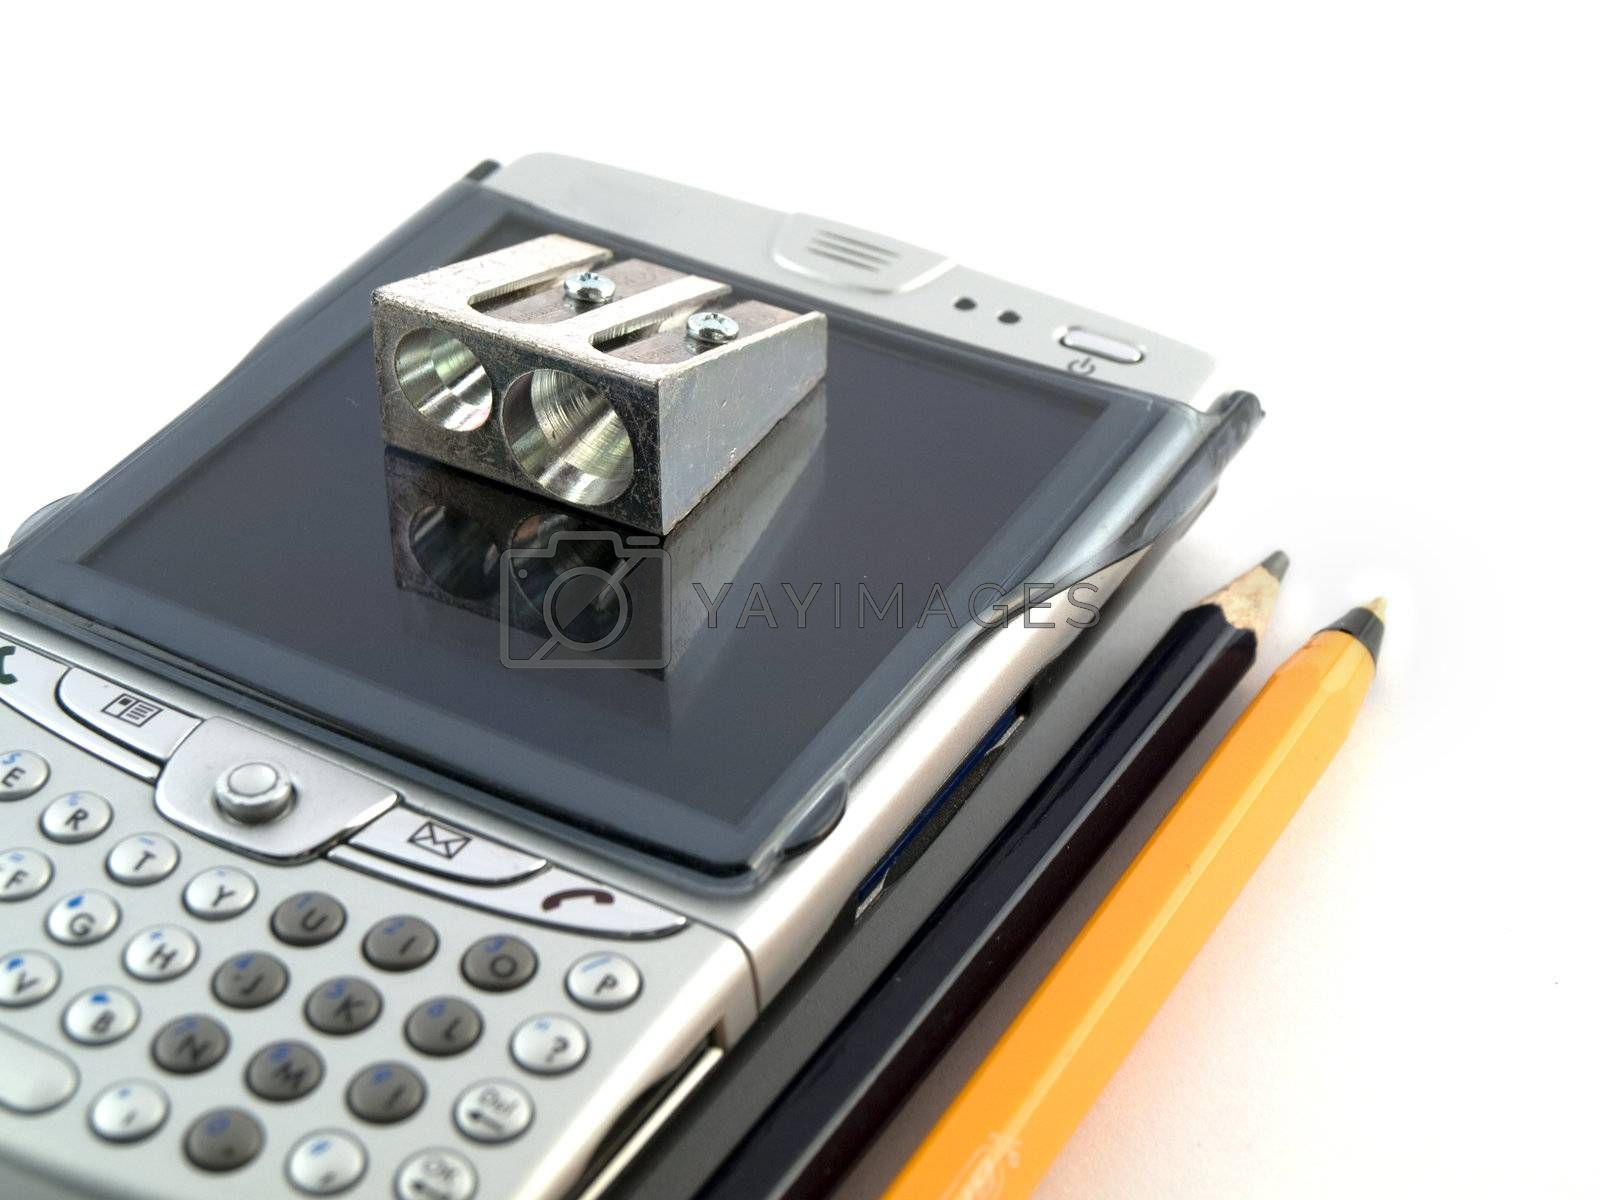 Modern Mobile Phones Pens and Pencils on White Background